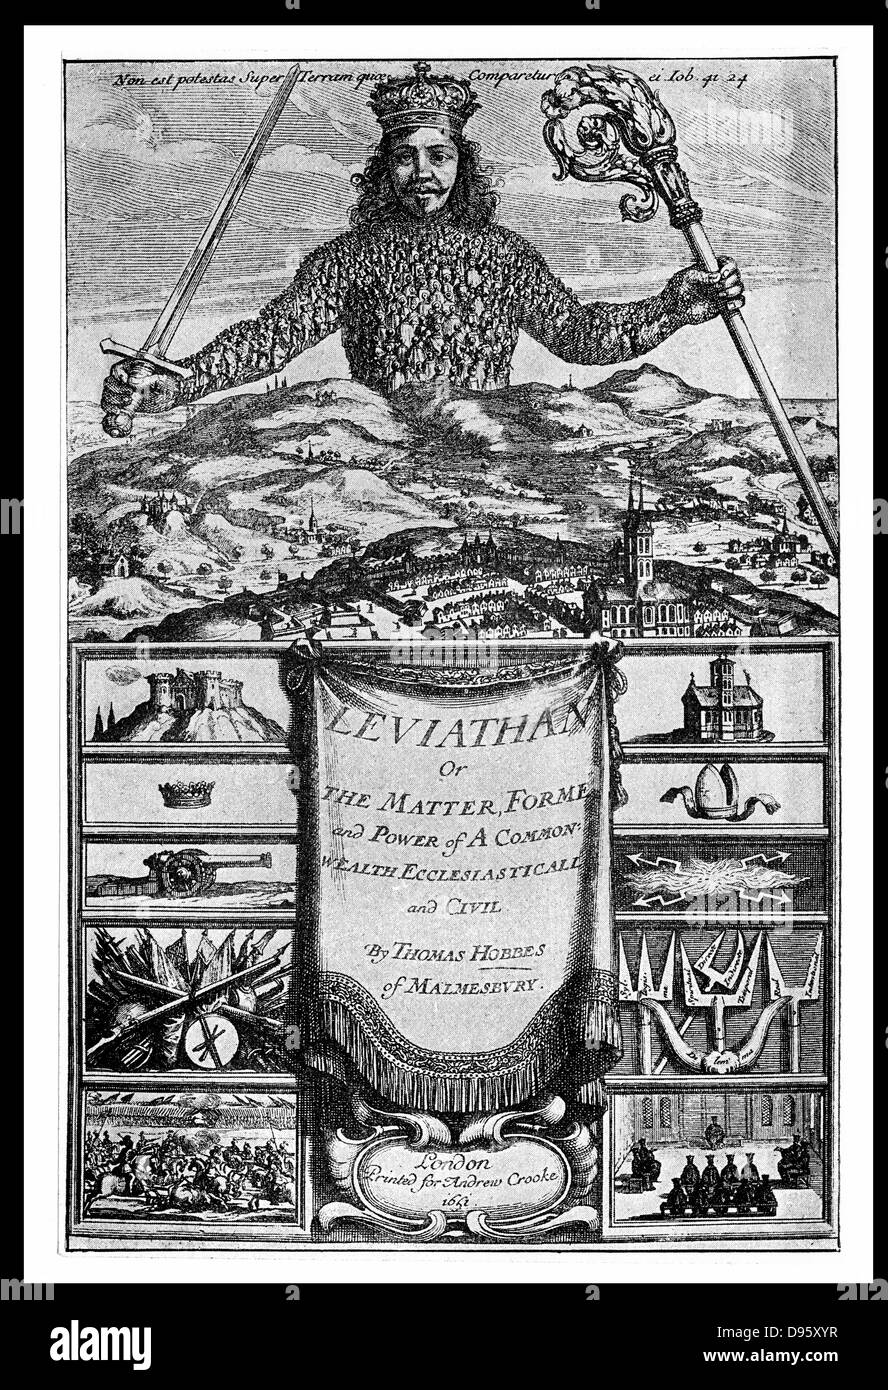 Titl page of 'Leviathan' by Thomas Hobbes (London, 1651). Hobbes (1588-1679) Enlgish political philosopher. Argued Stock Photo